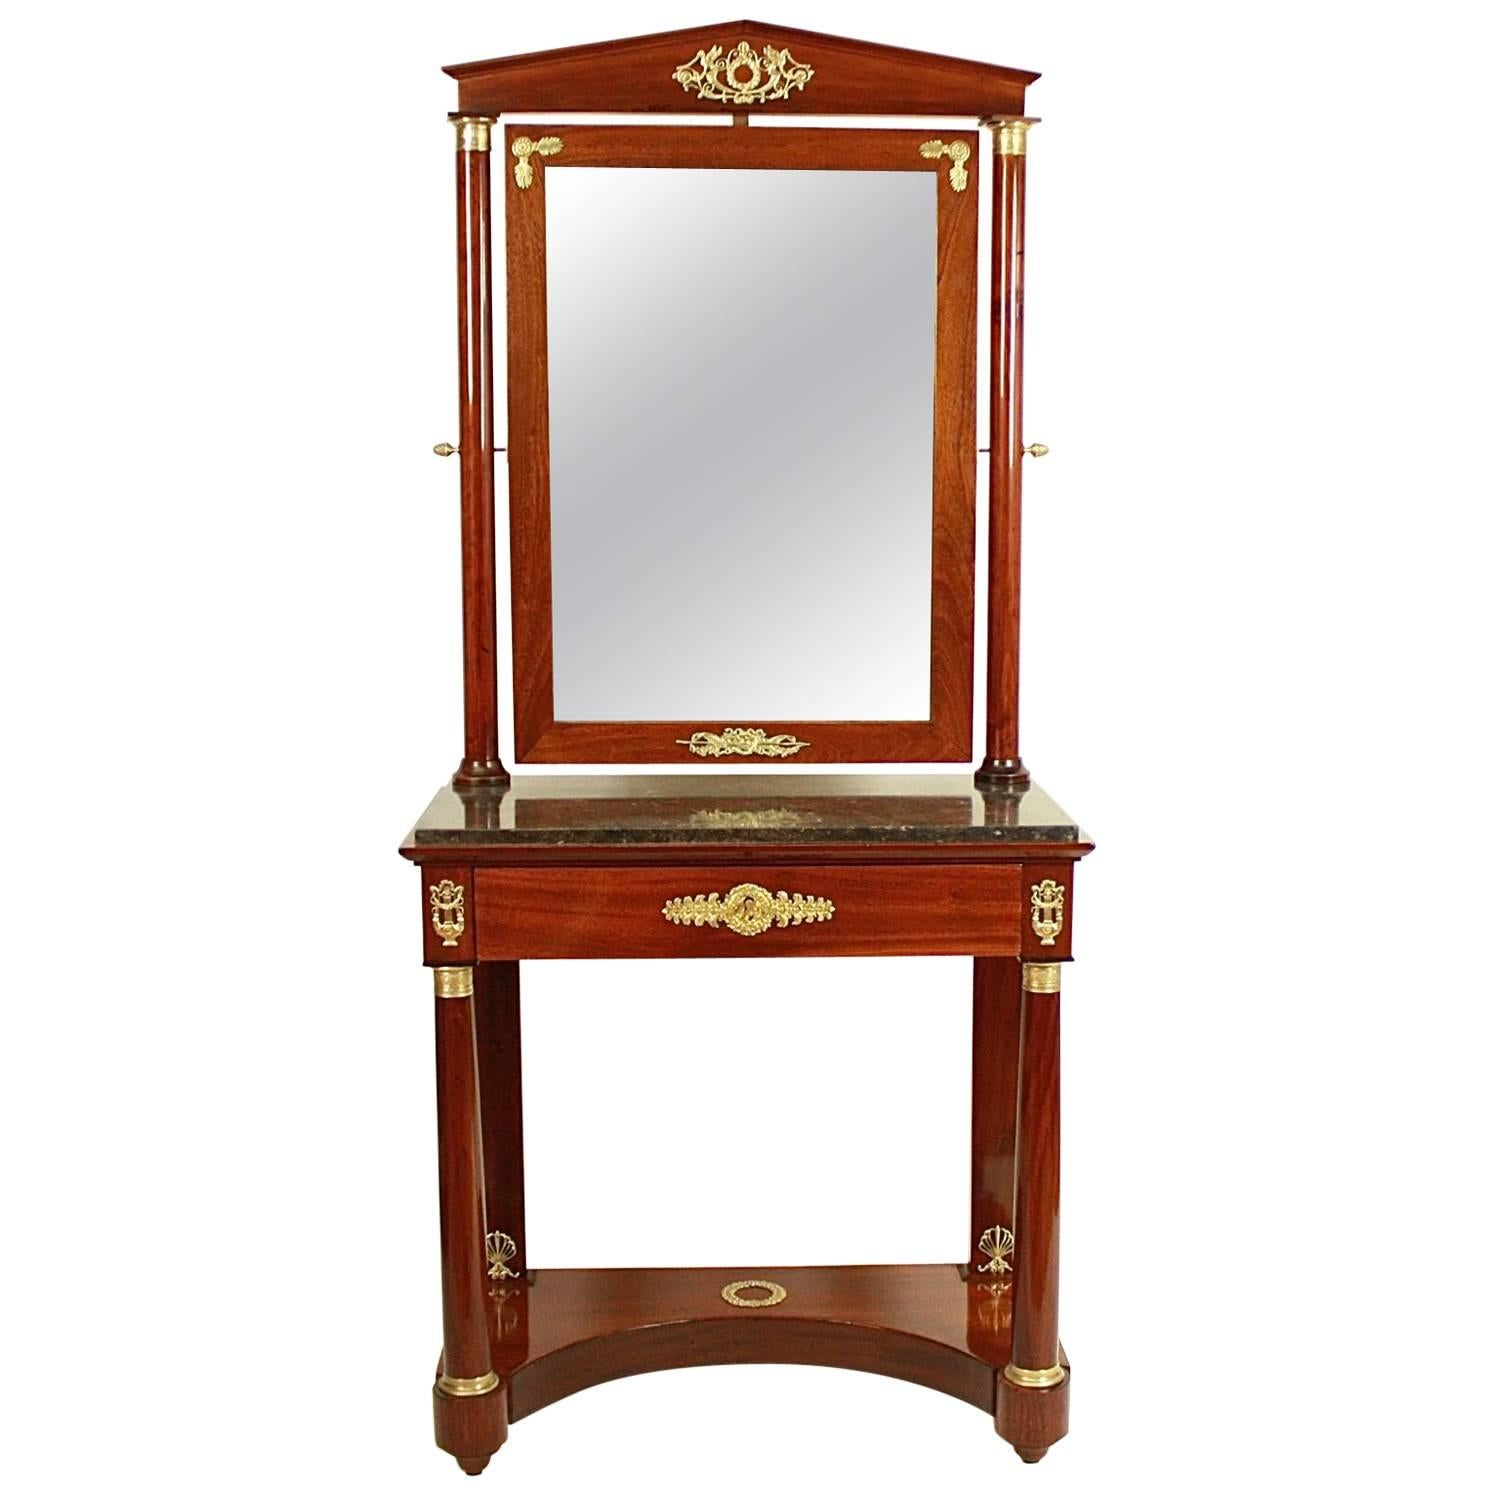 Empire Mahogany Dressing Table in the Manner of Jacob-Desmalter